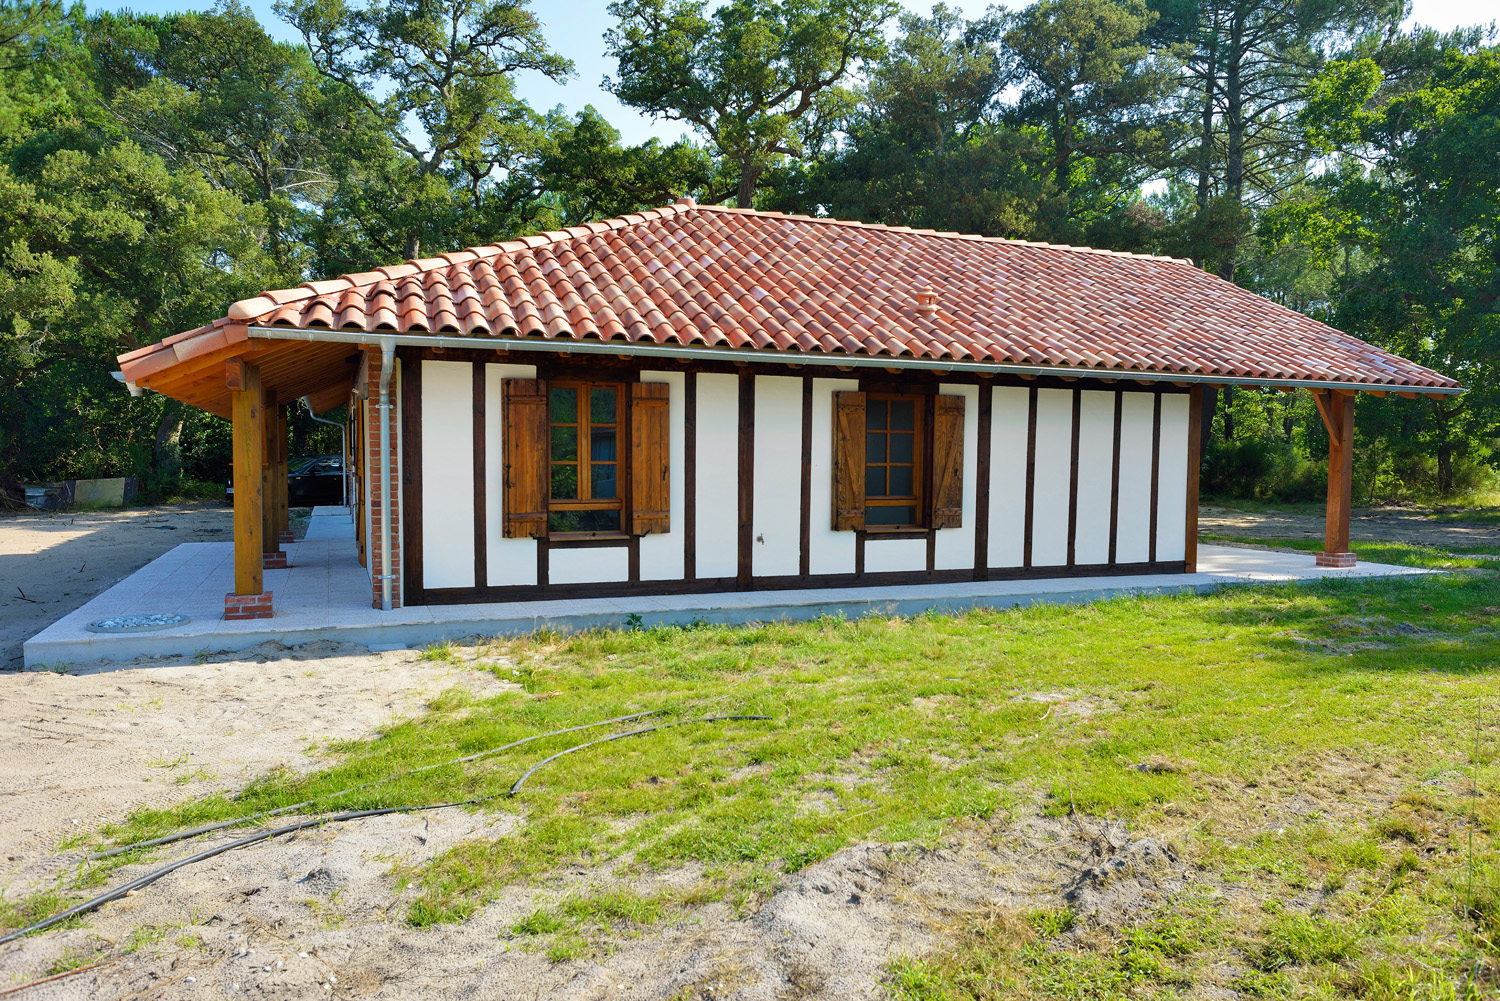 Populaire renovation-maison-landaise-traditionnelle-40-landes | Construction  PL97